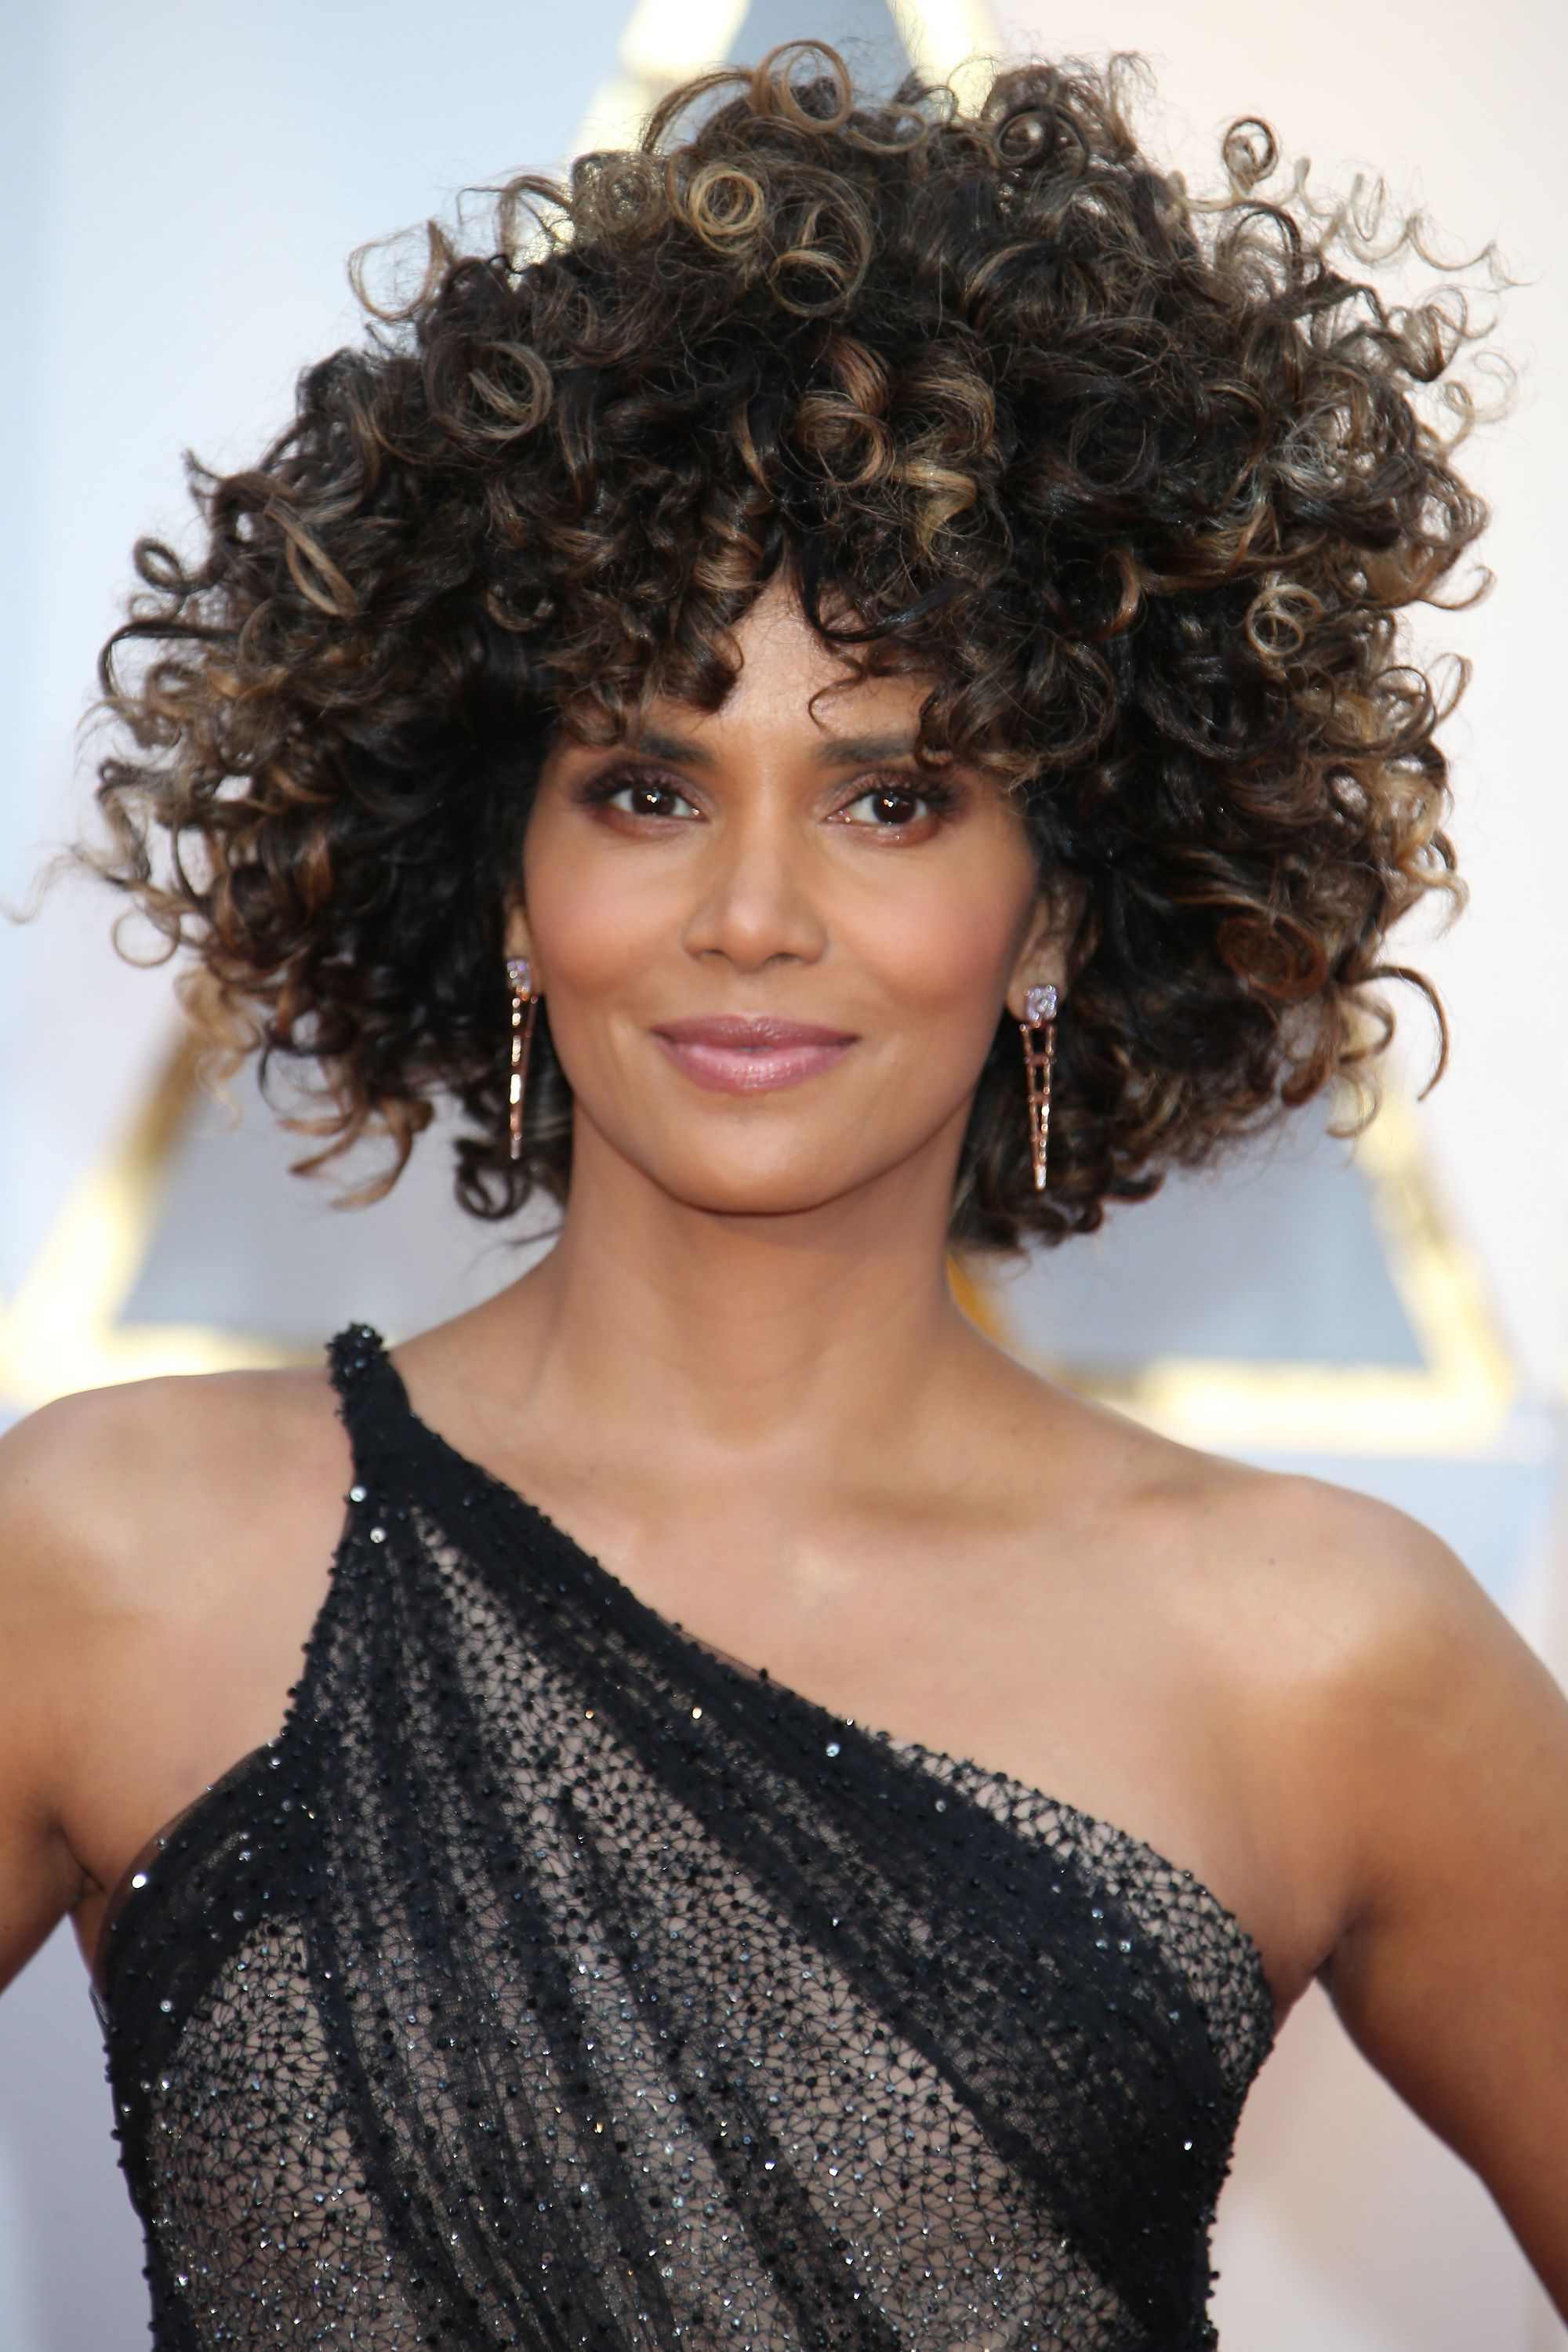 42 Easy Curly Hairstyles – Short, Medium, And Long Haircuts For Inside Short Haircuts For Naturally Curly Hair And Round Face (View 7 of 25)